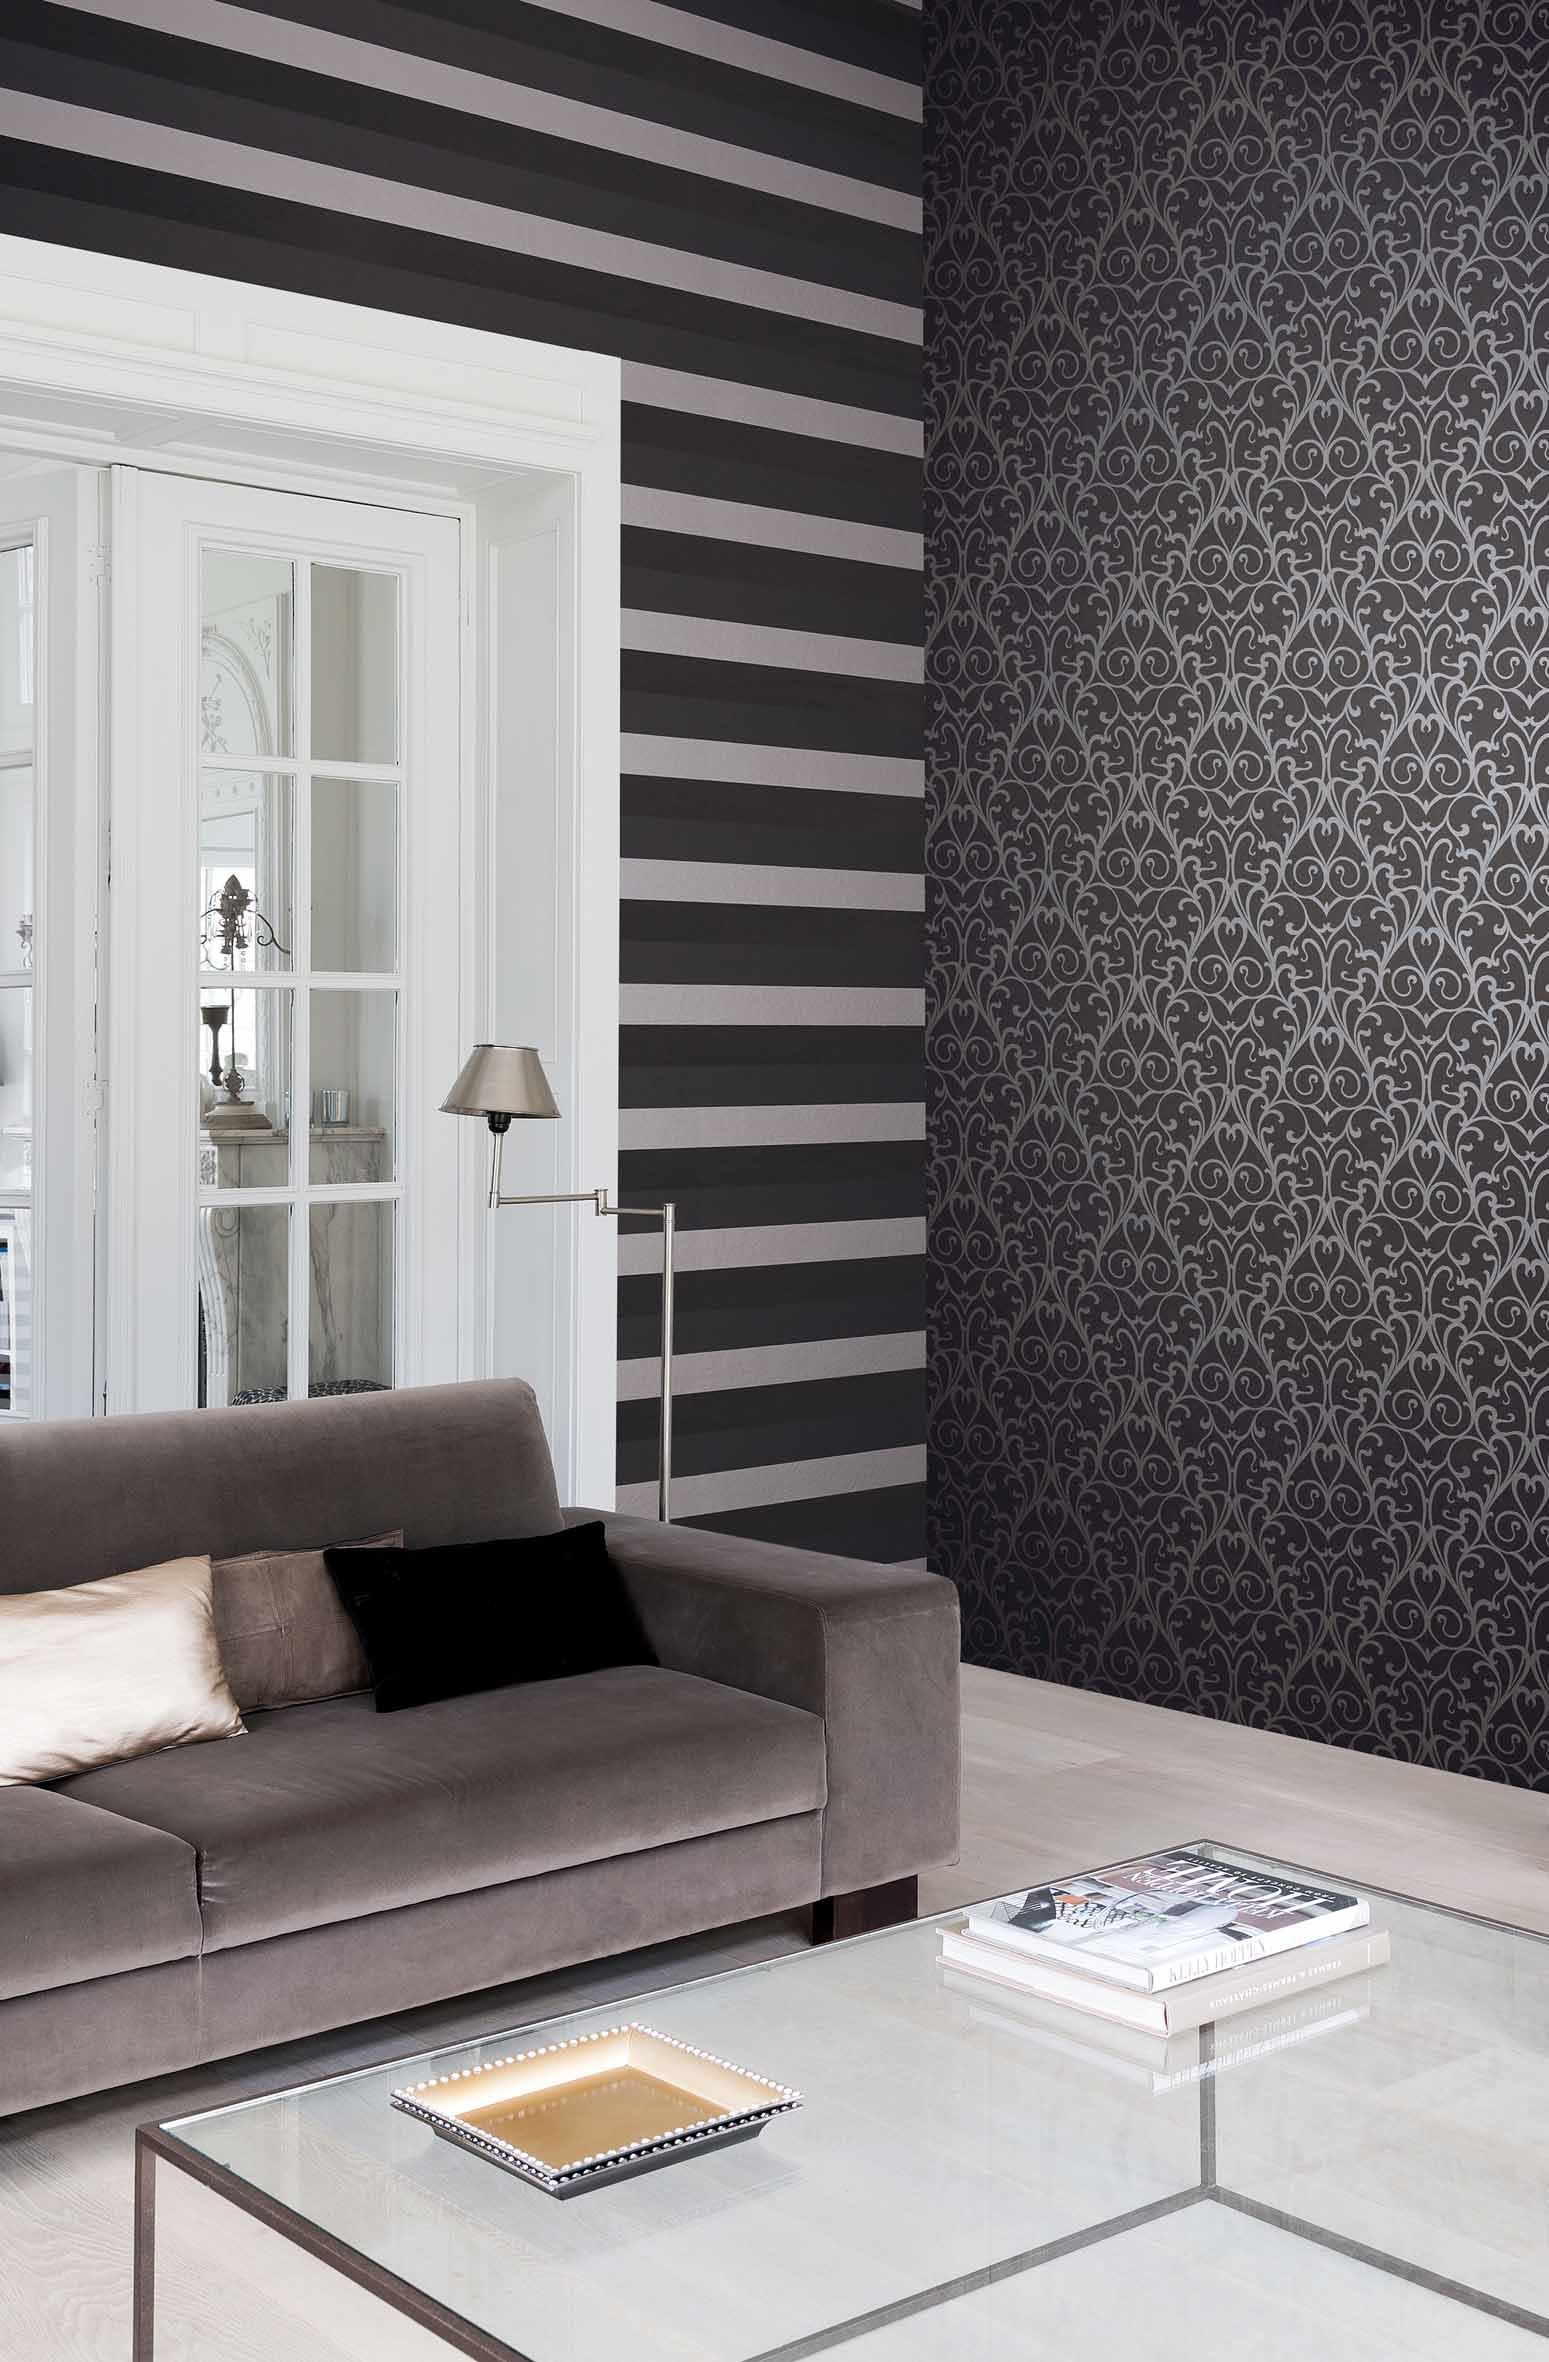 masureel, zoom, mazurka, behang, wallpaper, tapete, revêtement mural, papier peint, wallcovering